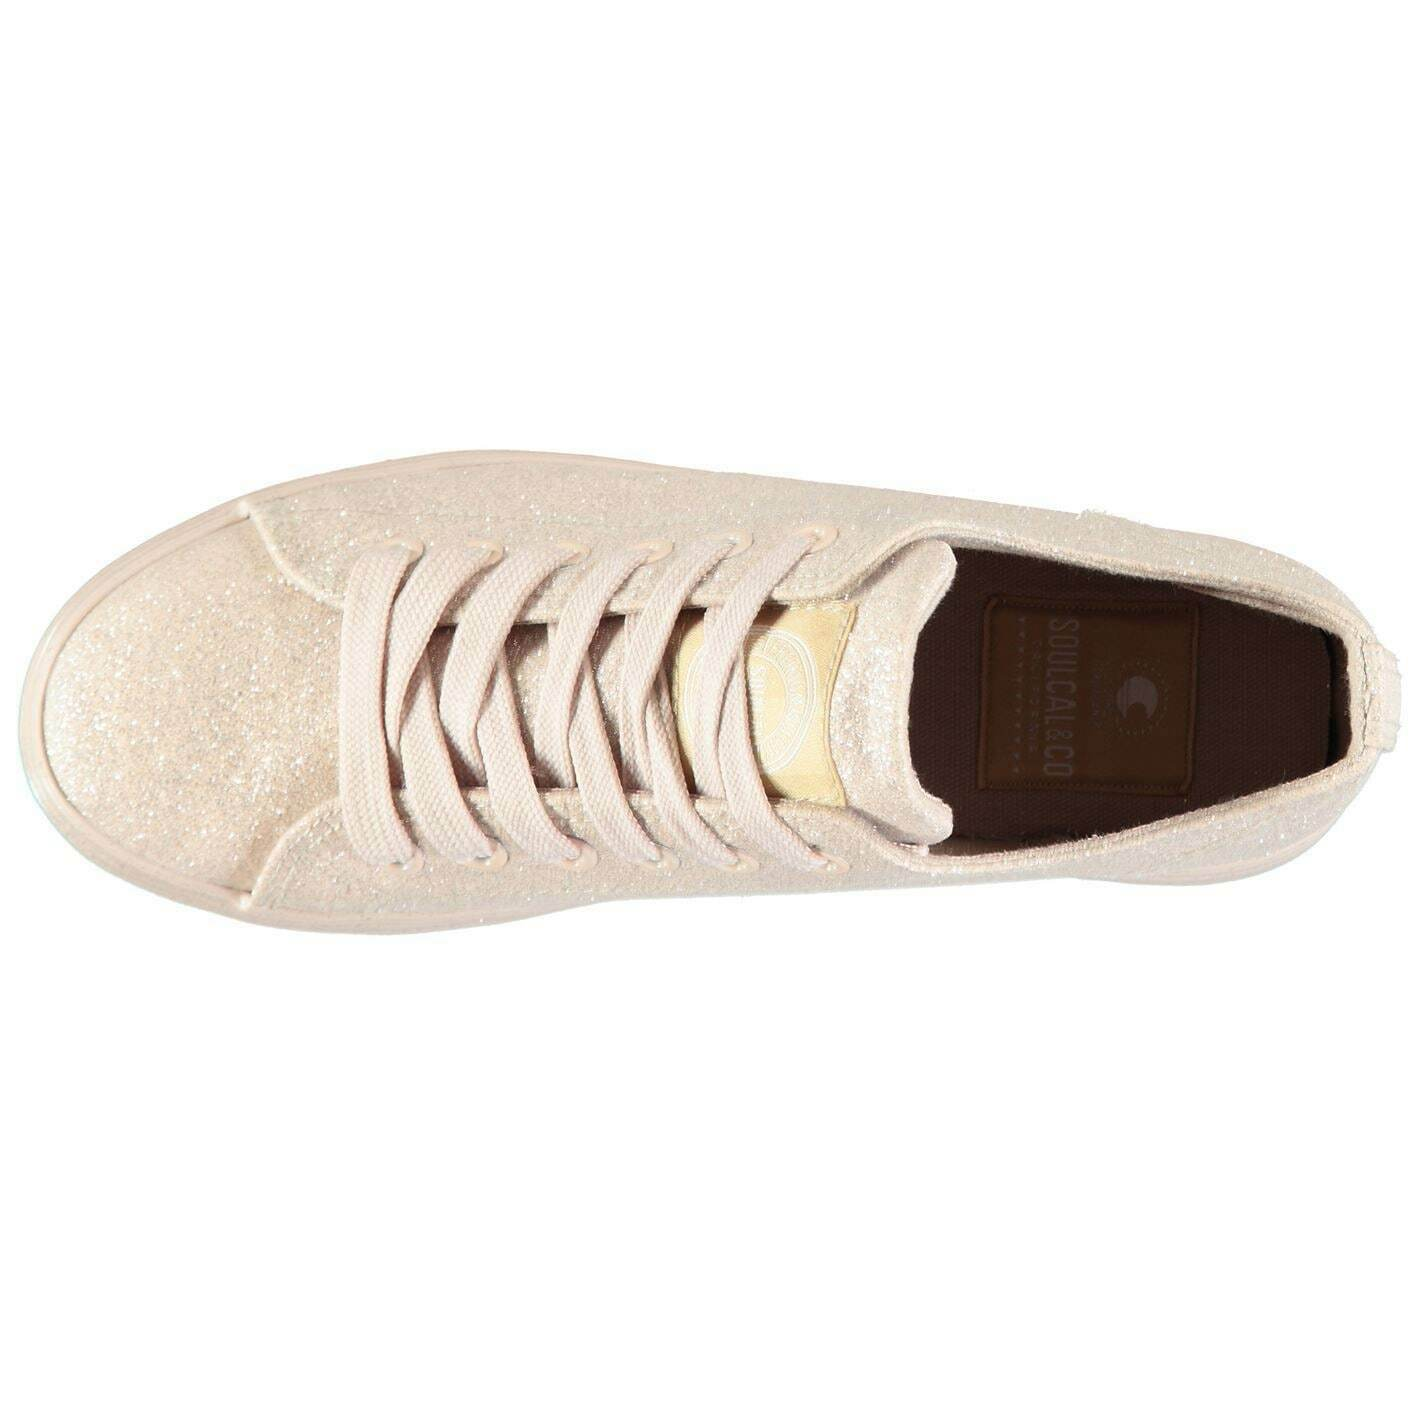 Womens SoulCal Candy Trainers Canvas Low Lace Up New